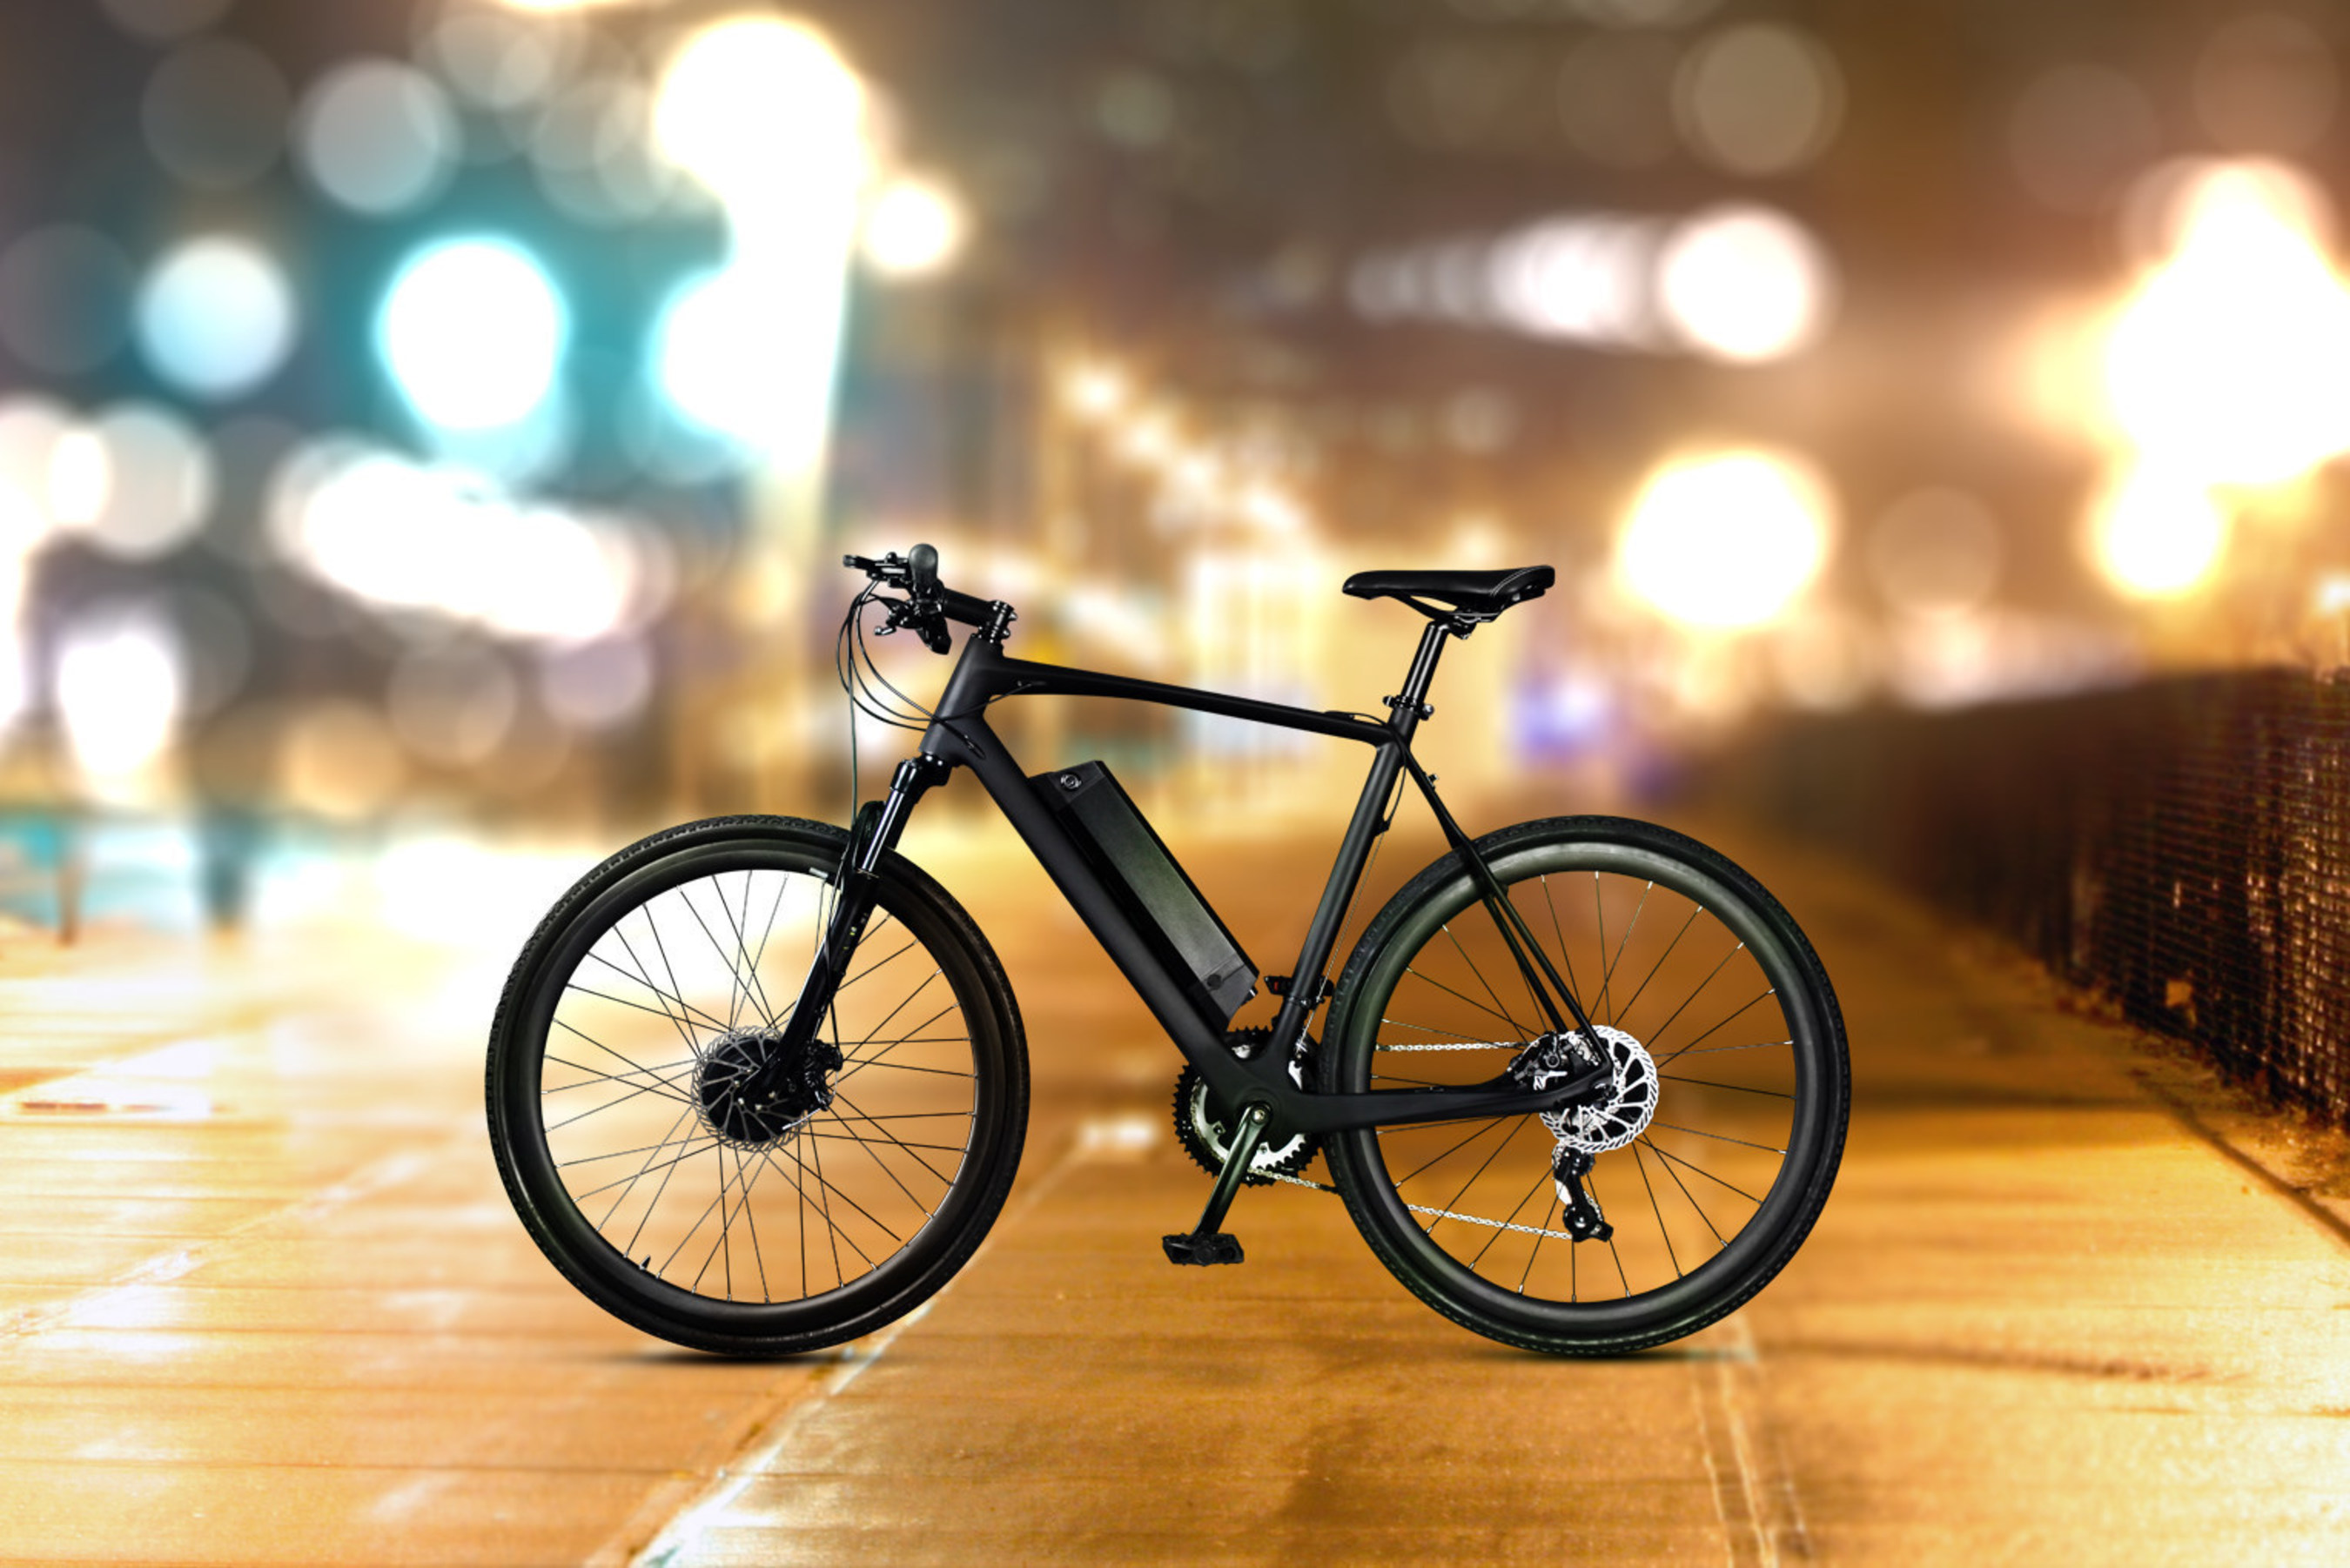 DAYMAK Launches EC1 Carbon Fiber Ebike at EICMA Milan Italy